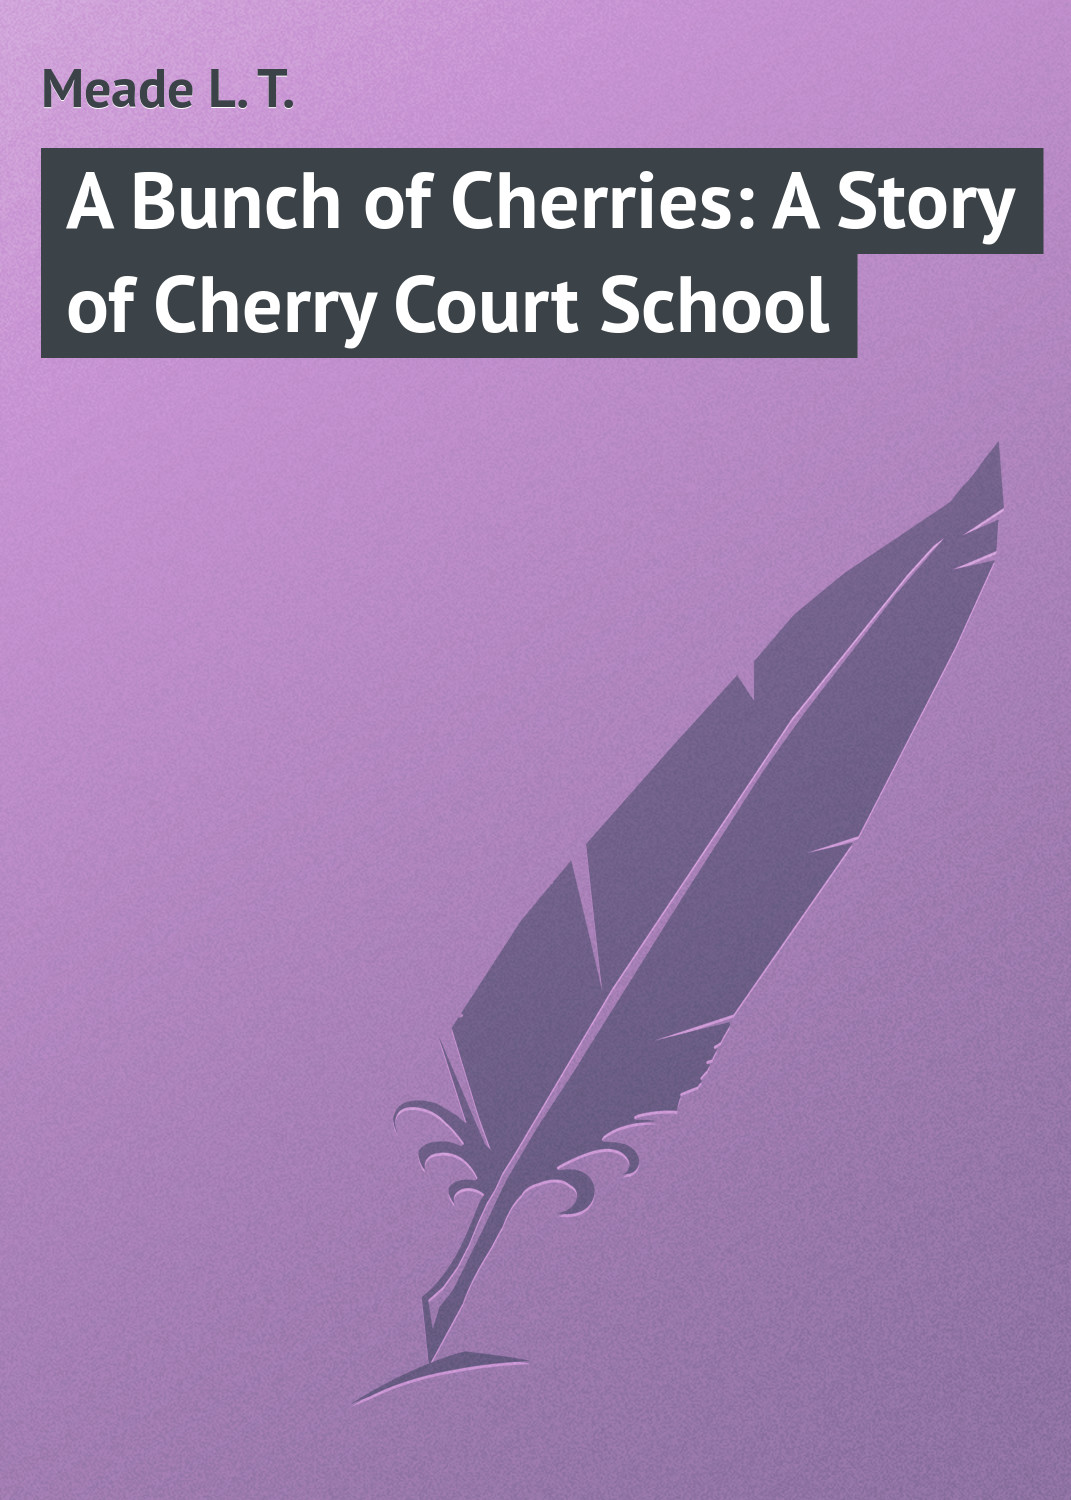 Meade L. T. A Bunch of Cherries: A Story of Cherry Court School